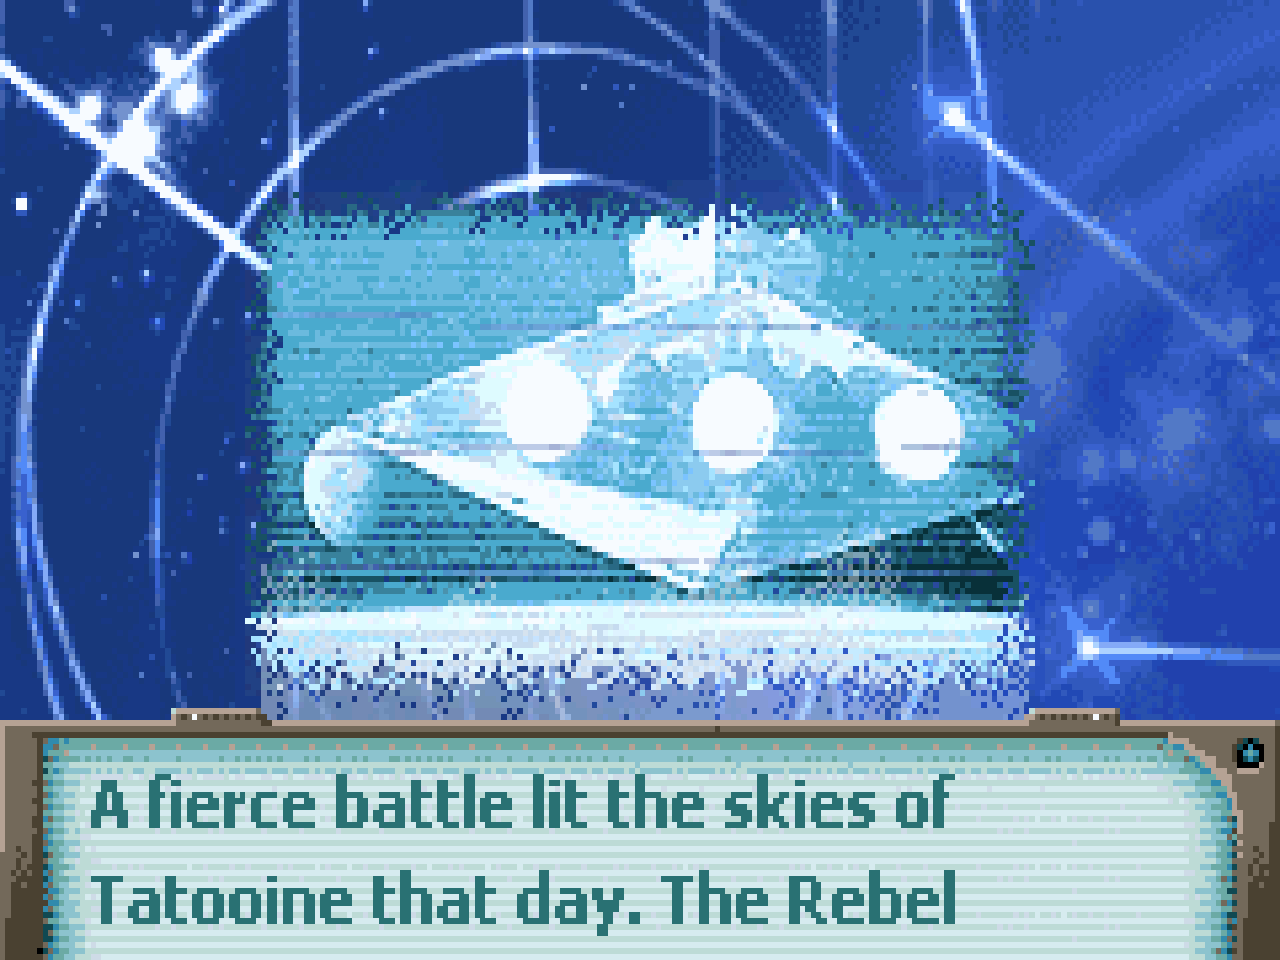 https://s3.eu-west-3.amazonaws.com/games.anthony-dessalles.com/Star Wars Trilogy Apprentice of the Force GBA 2020 - Screenshots/Star Wars Trilogy Apprentice of the Force-201114-190028.png